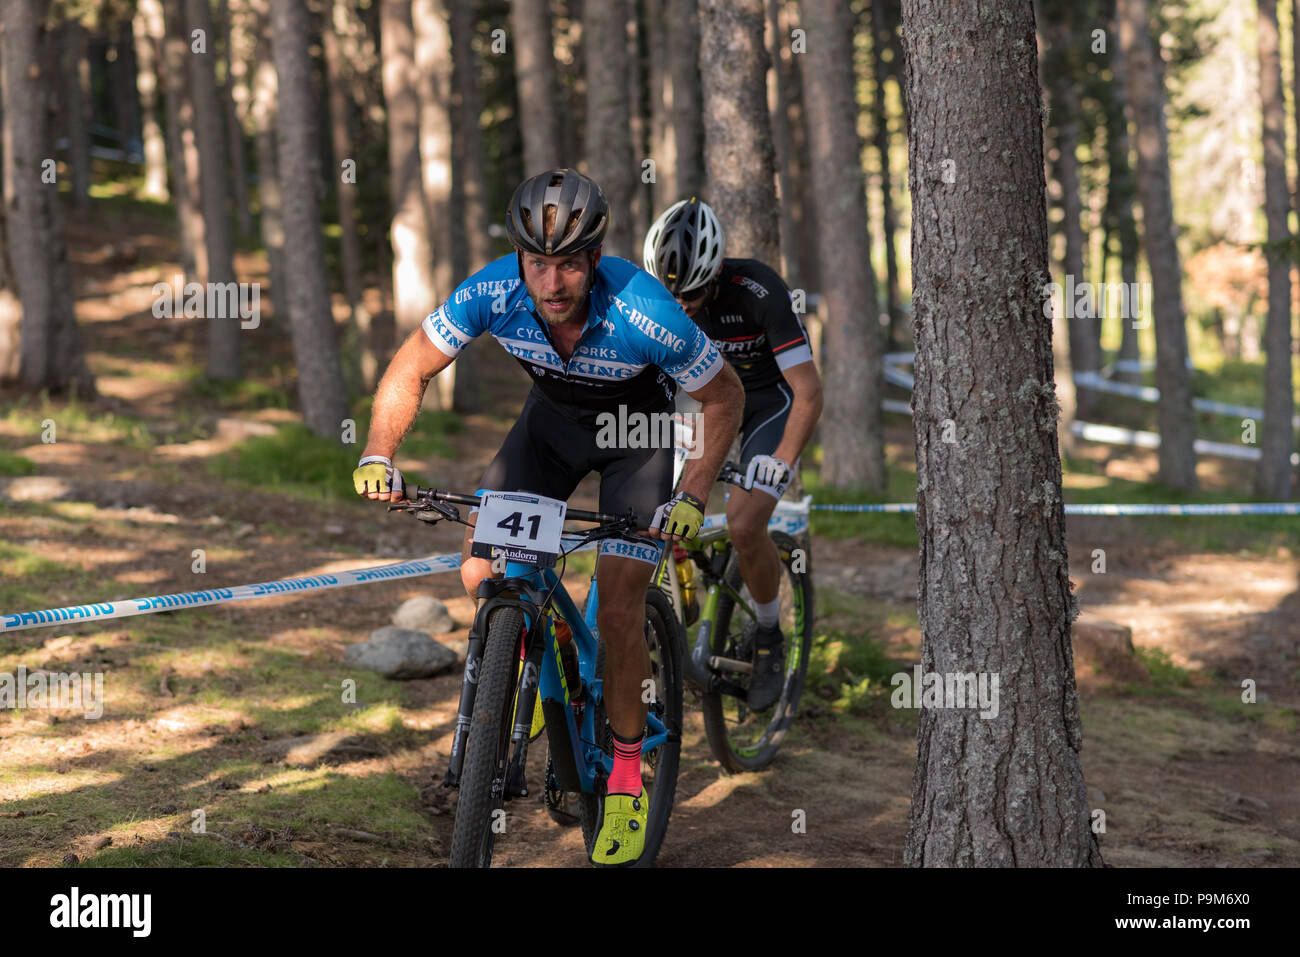 Vallnord, Andorra. 18th July, 2018. REVELL Tony GBR in the MERCEDES-BENZ UCI MTB WORLD CUP MASTERS 2018 - XCO - XCC - DHI Vallnord, Andorra on July 18, 2018 in Vallnord, Andorra Credit: Martin Silva Cosentino / Alamy Live News - Stock Image